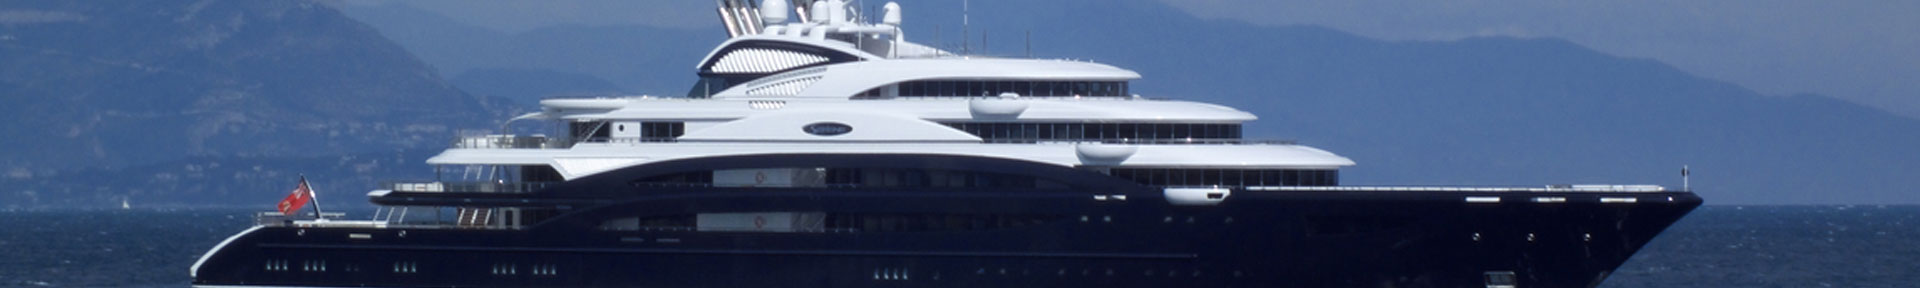 A superyacht with a dark blue hull at anchor